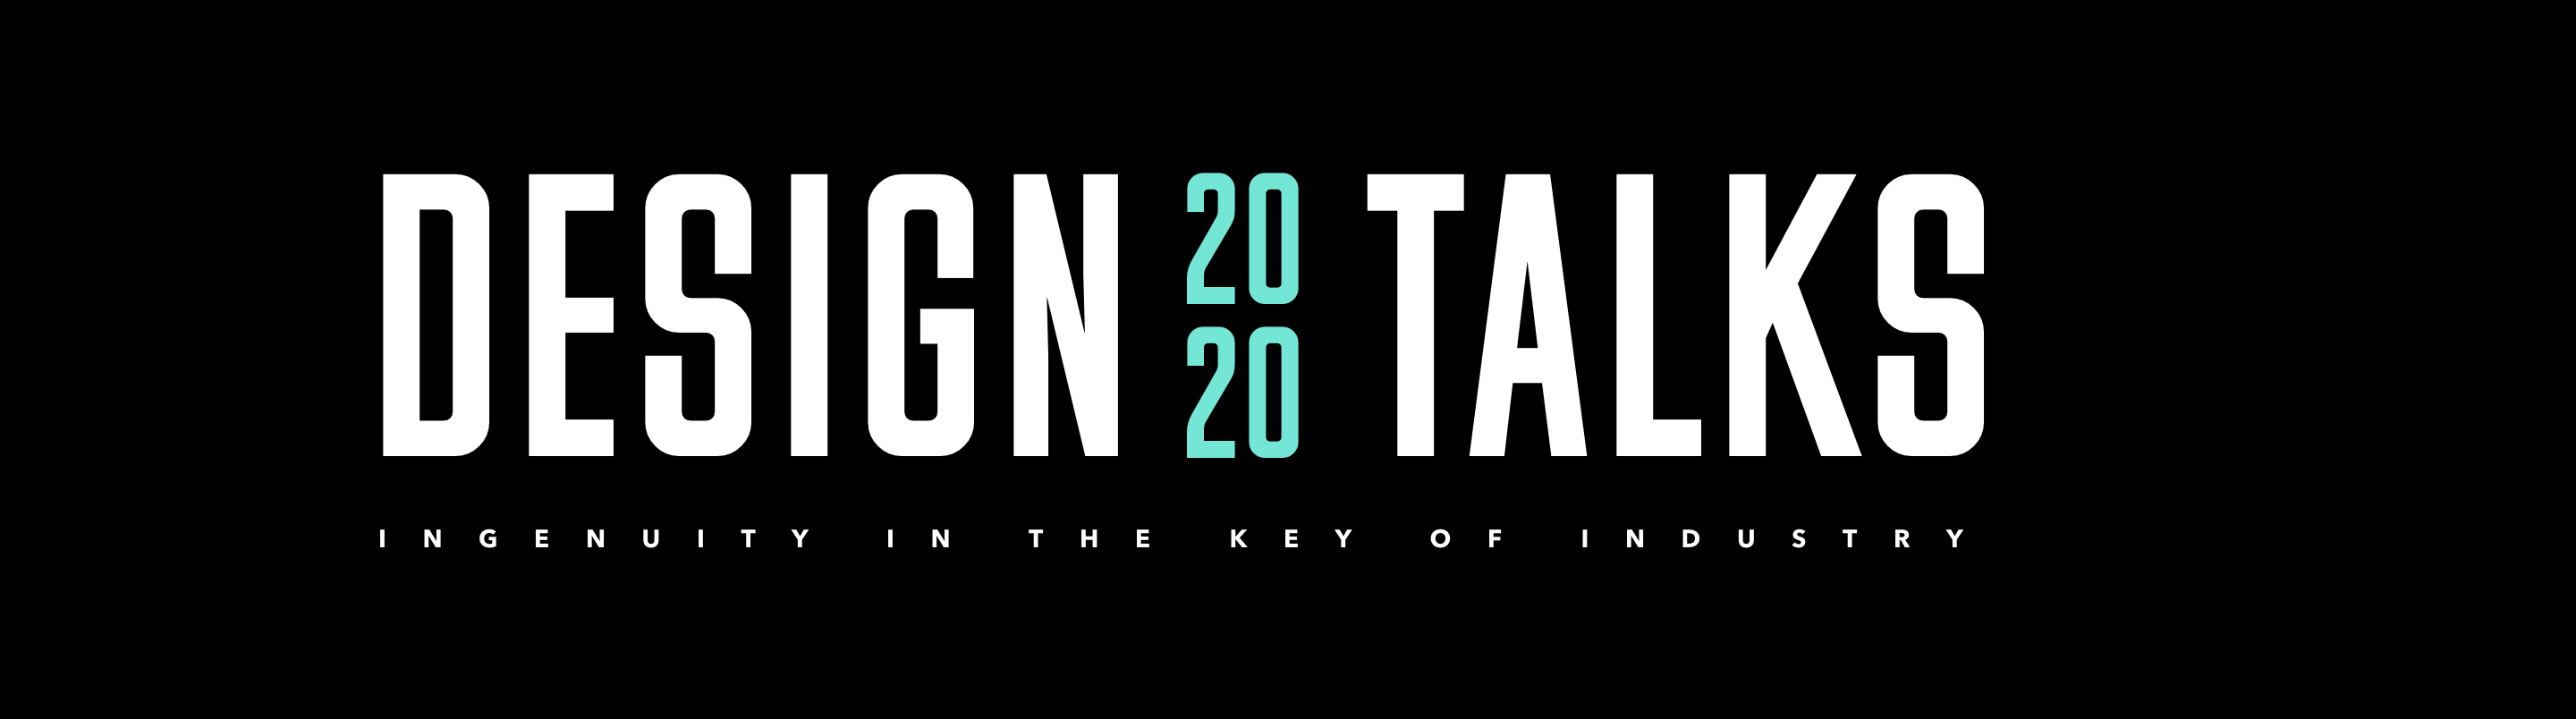 Design 2020 Talks